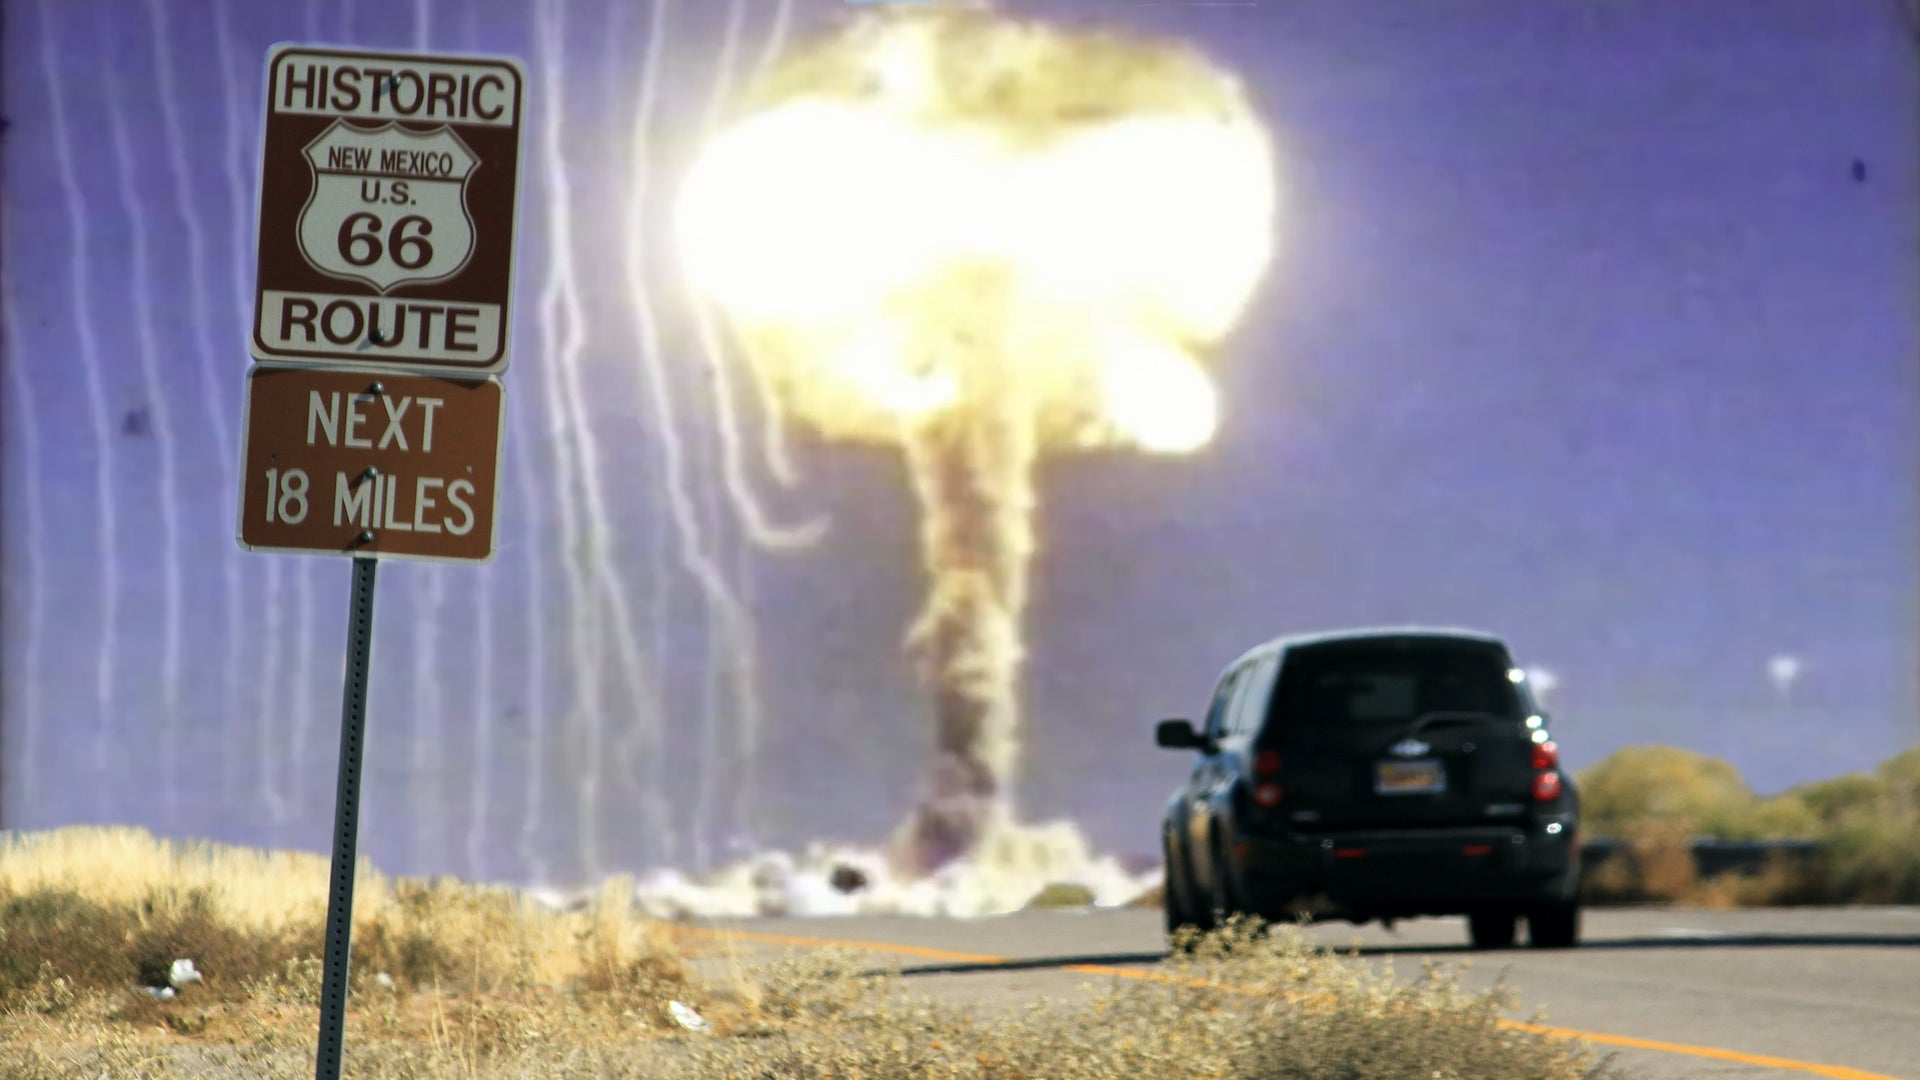 America Almost Made a New Route 66 With 22 Nuclear Bombs